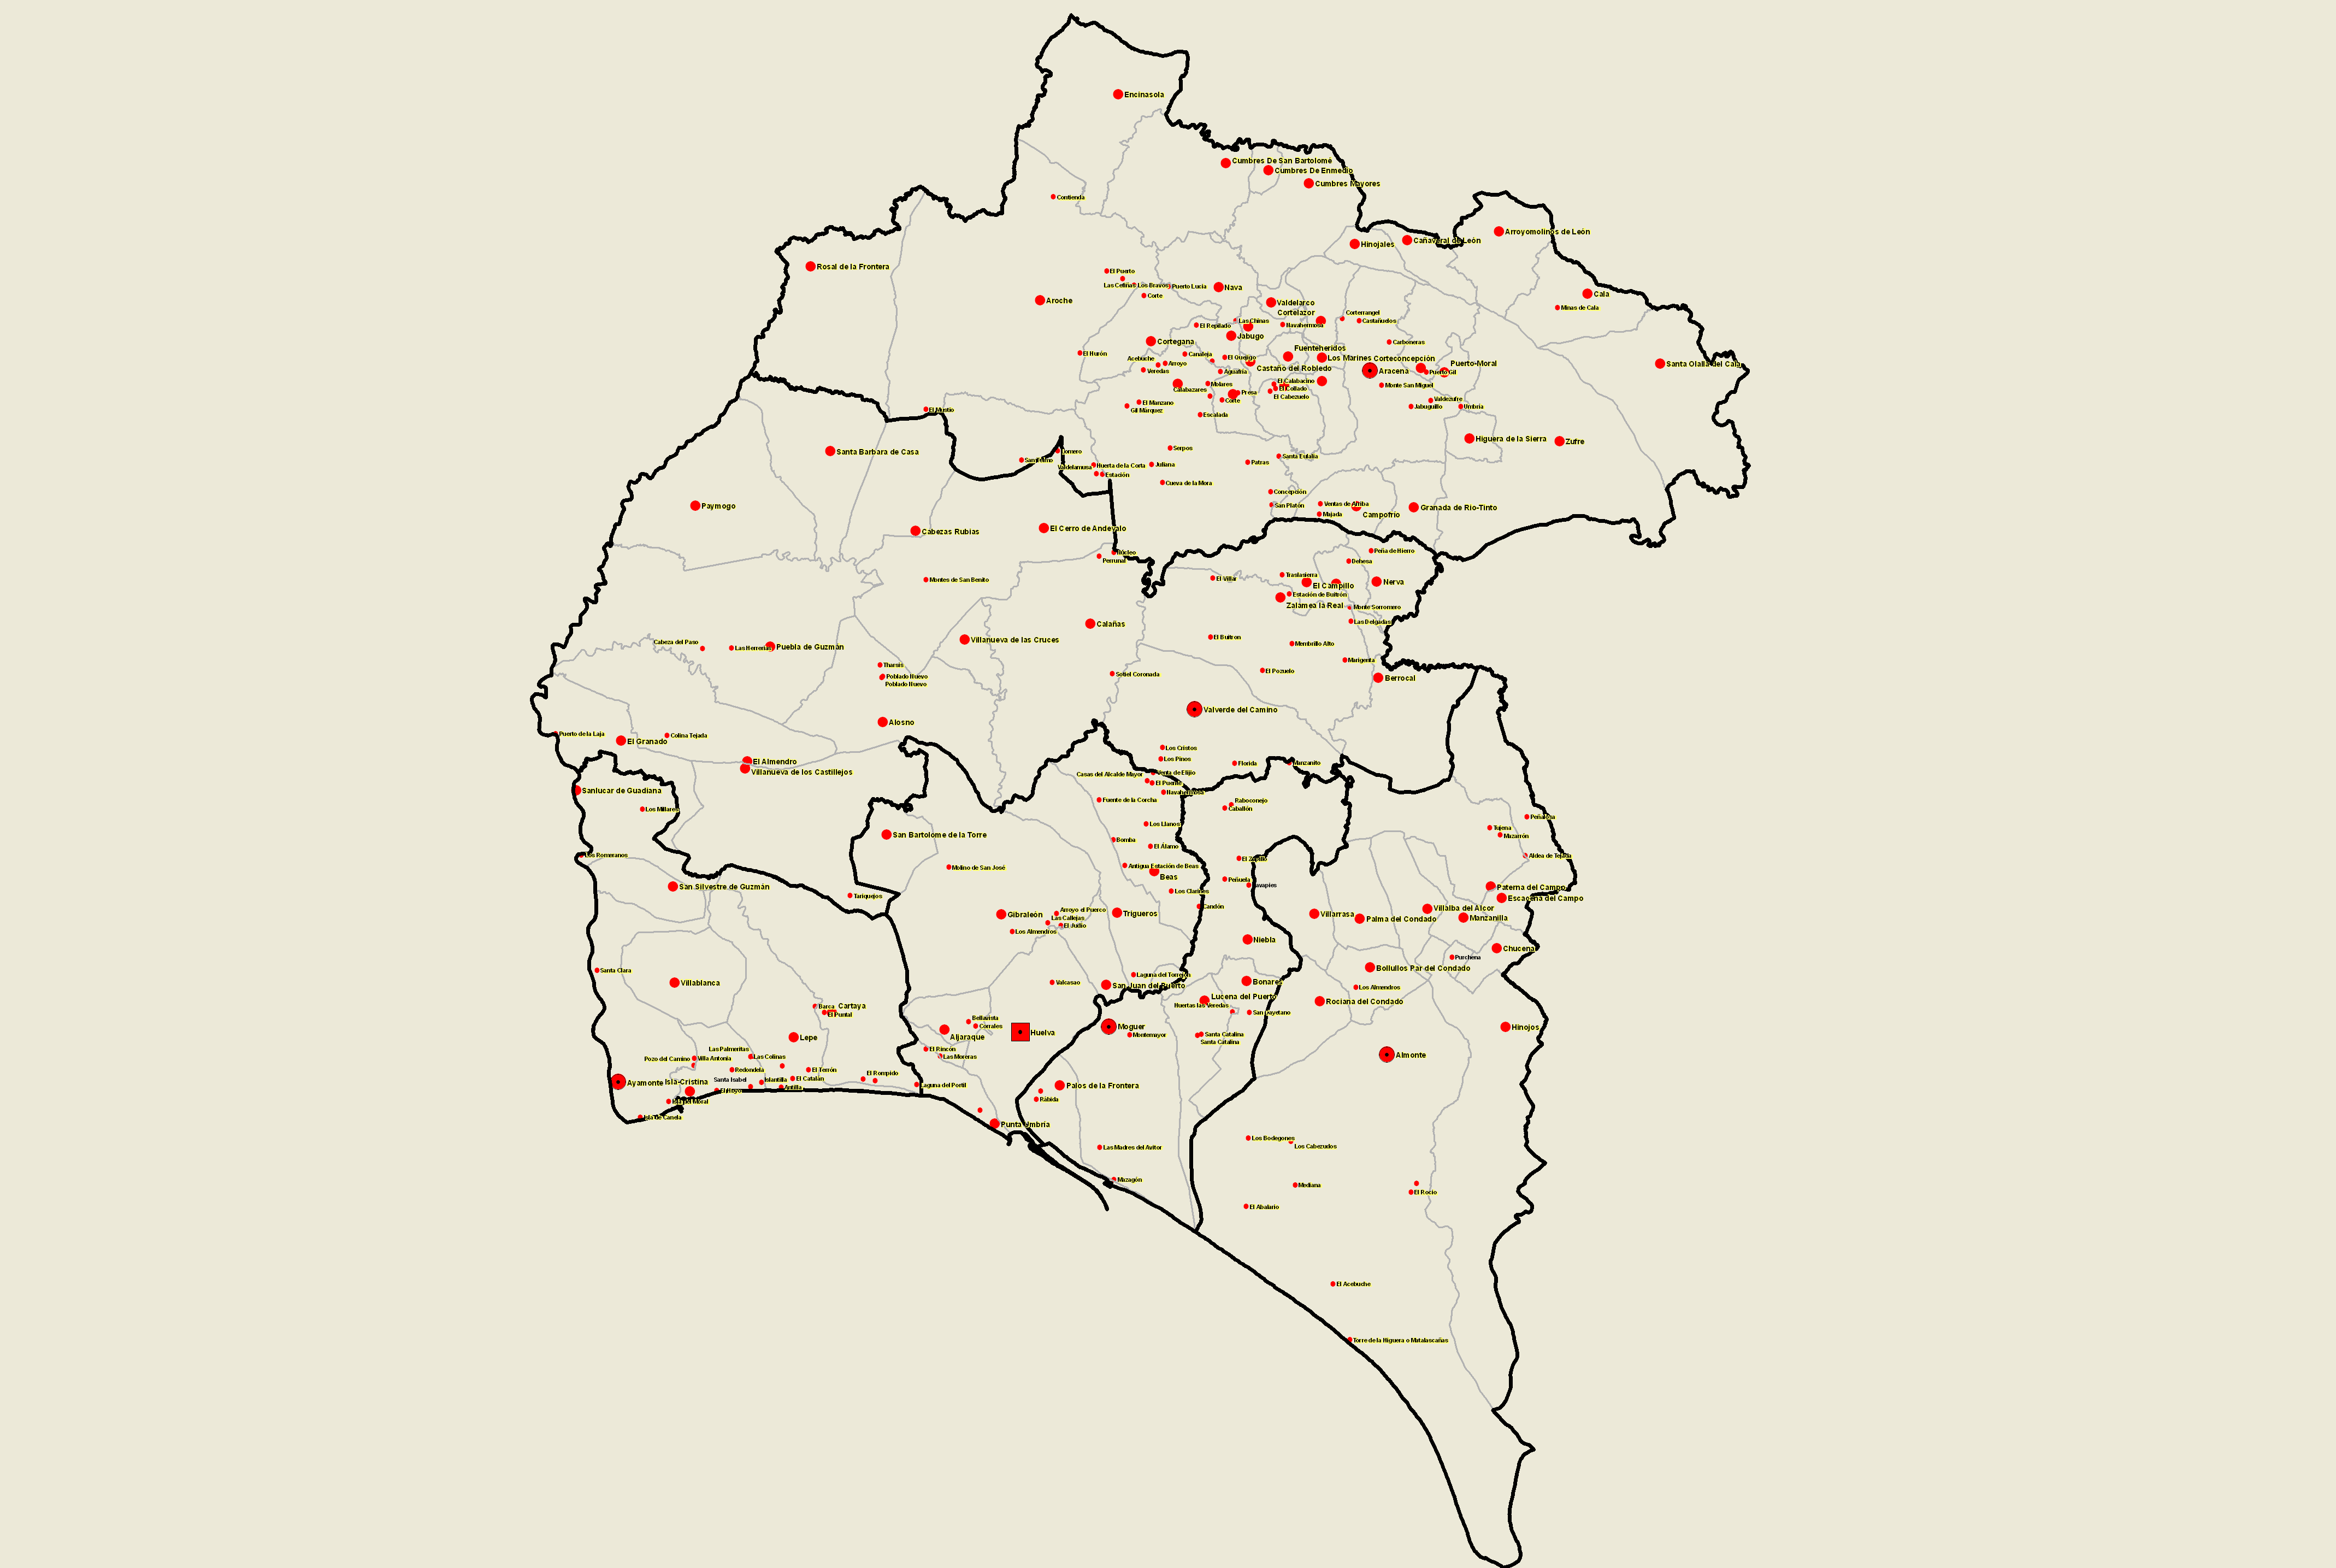 Towns and villages of the province of Huelva 2008